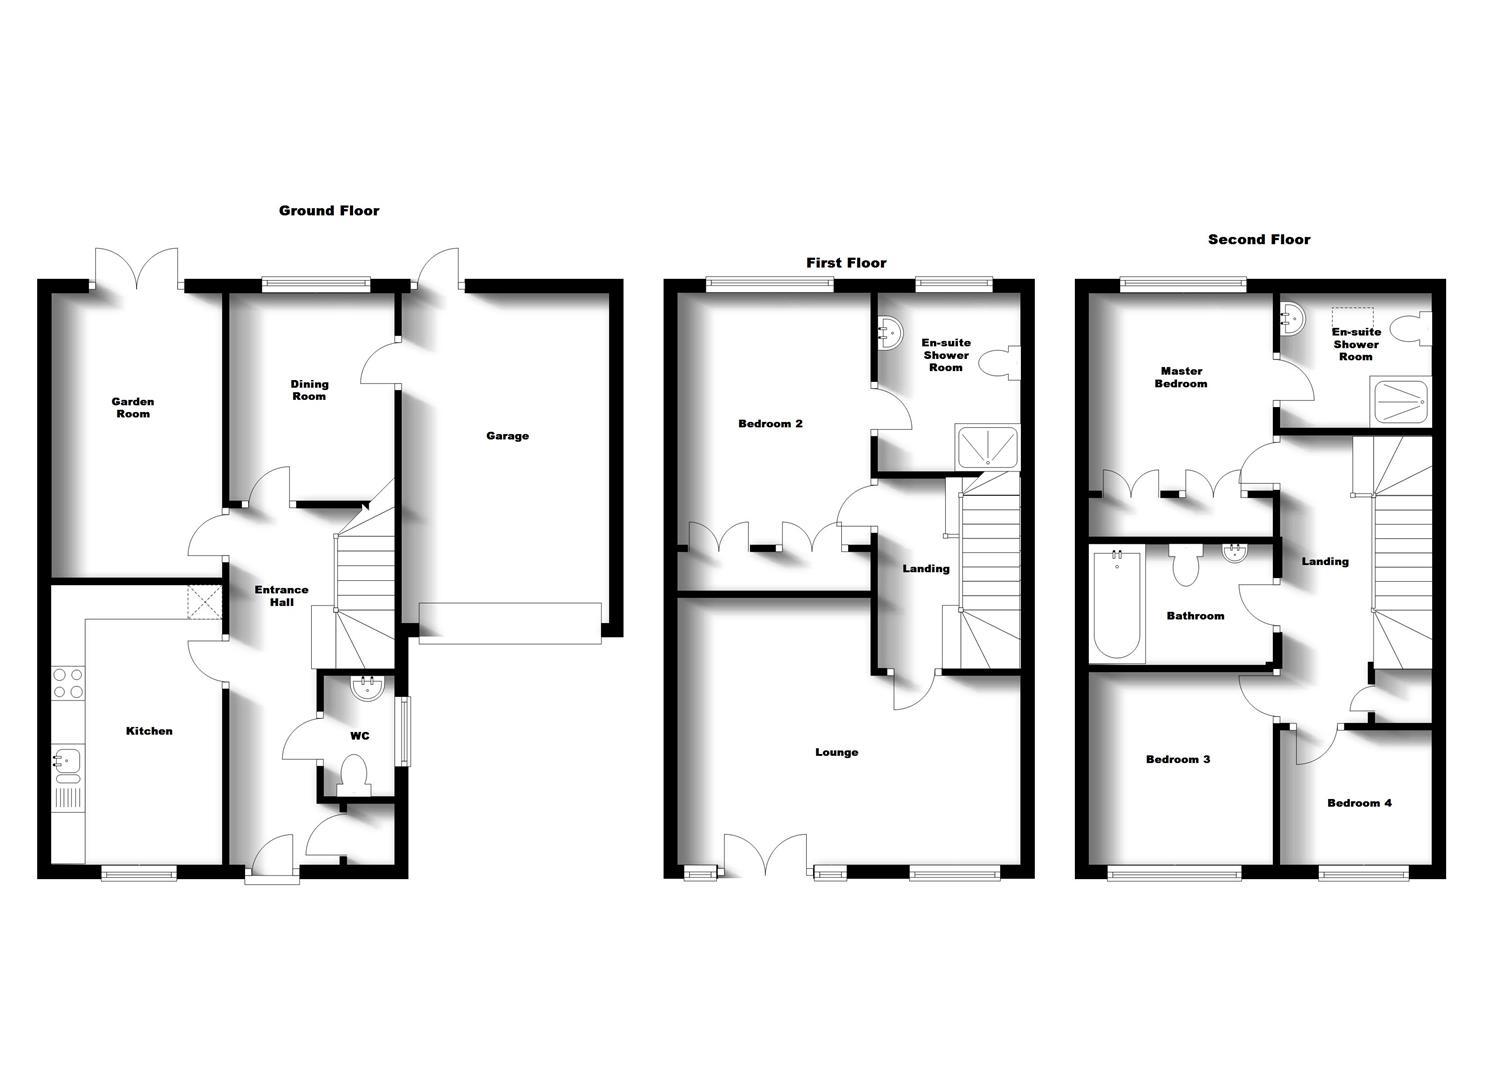 Floorplans For Woodleigh Road, Long Lawford, Rugby